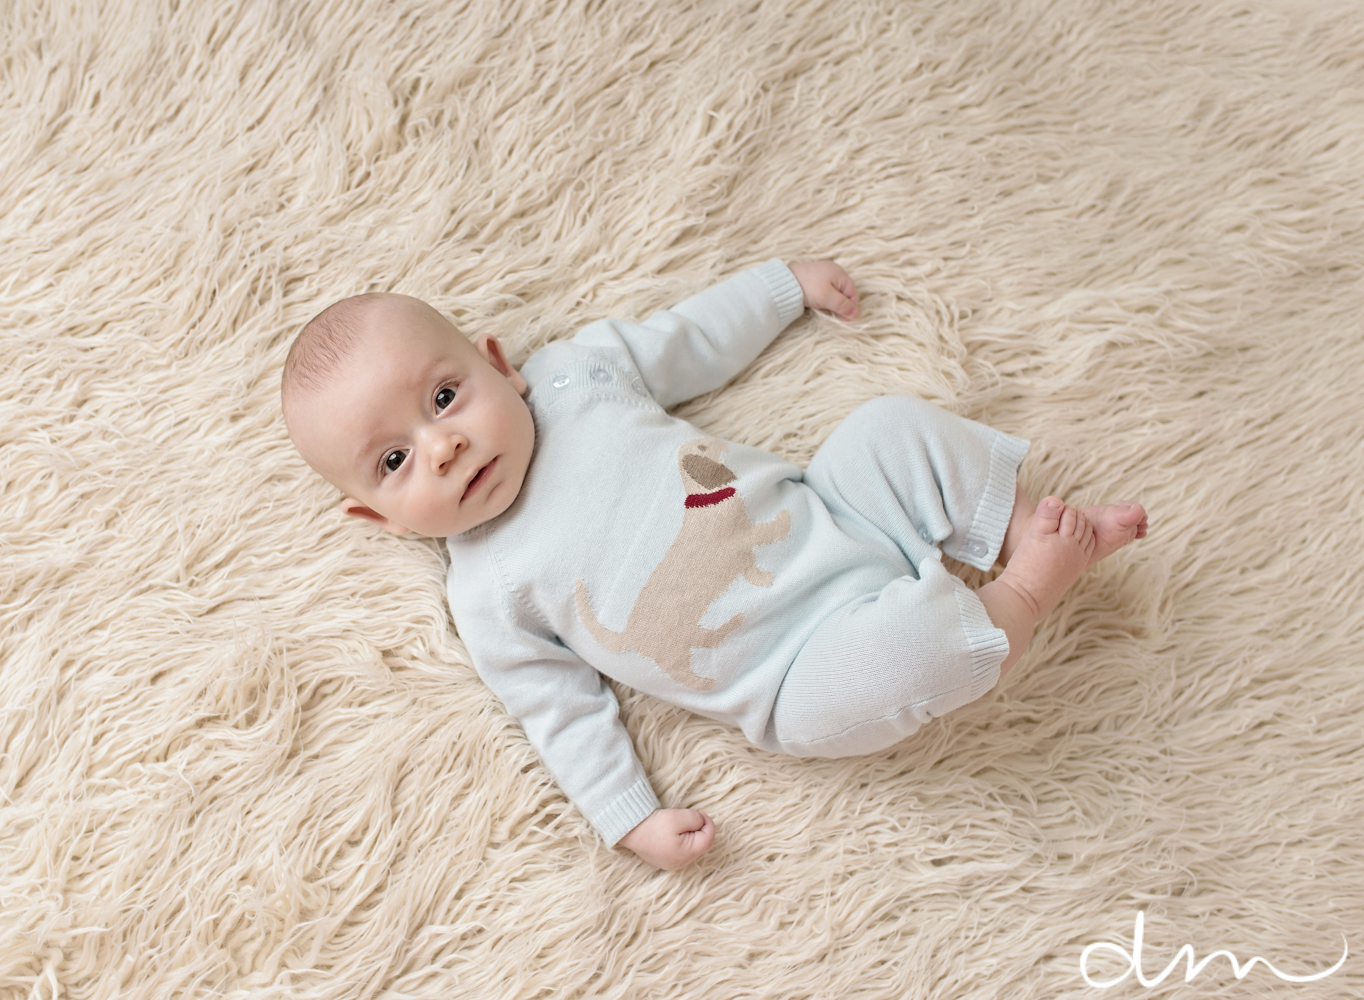 Titling/Alt Text/Description: 1. newborn photography jacksonville 2. st augustine newborn photography 3. jacksonville baby photographer 4. photography by diana marie 5. taco pose 6. baby on gray blanket